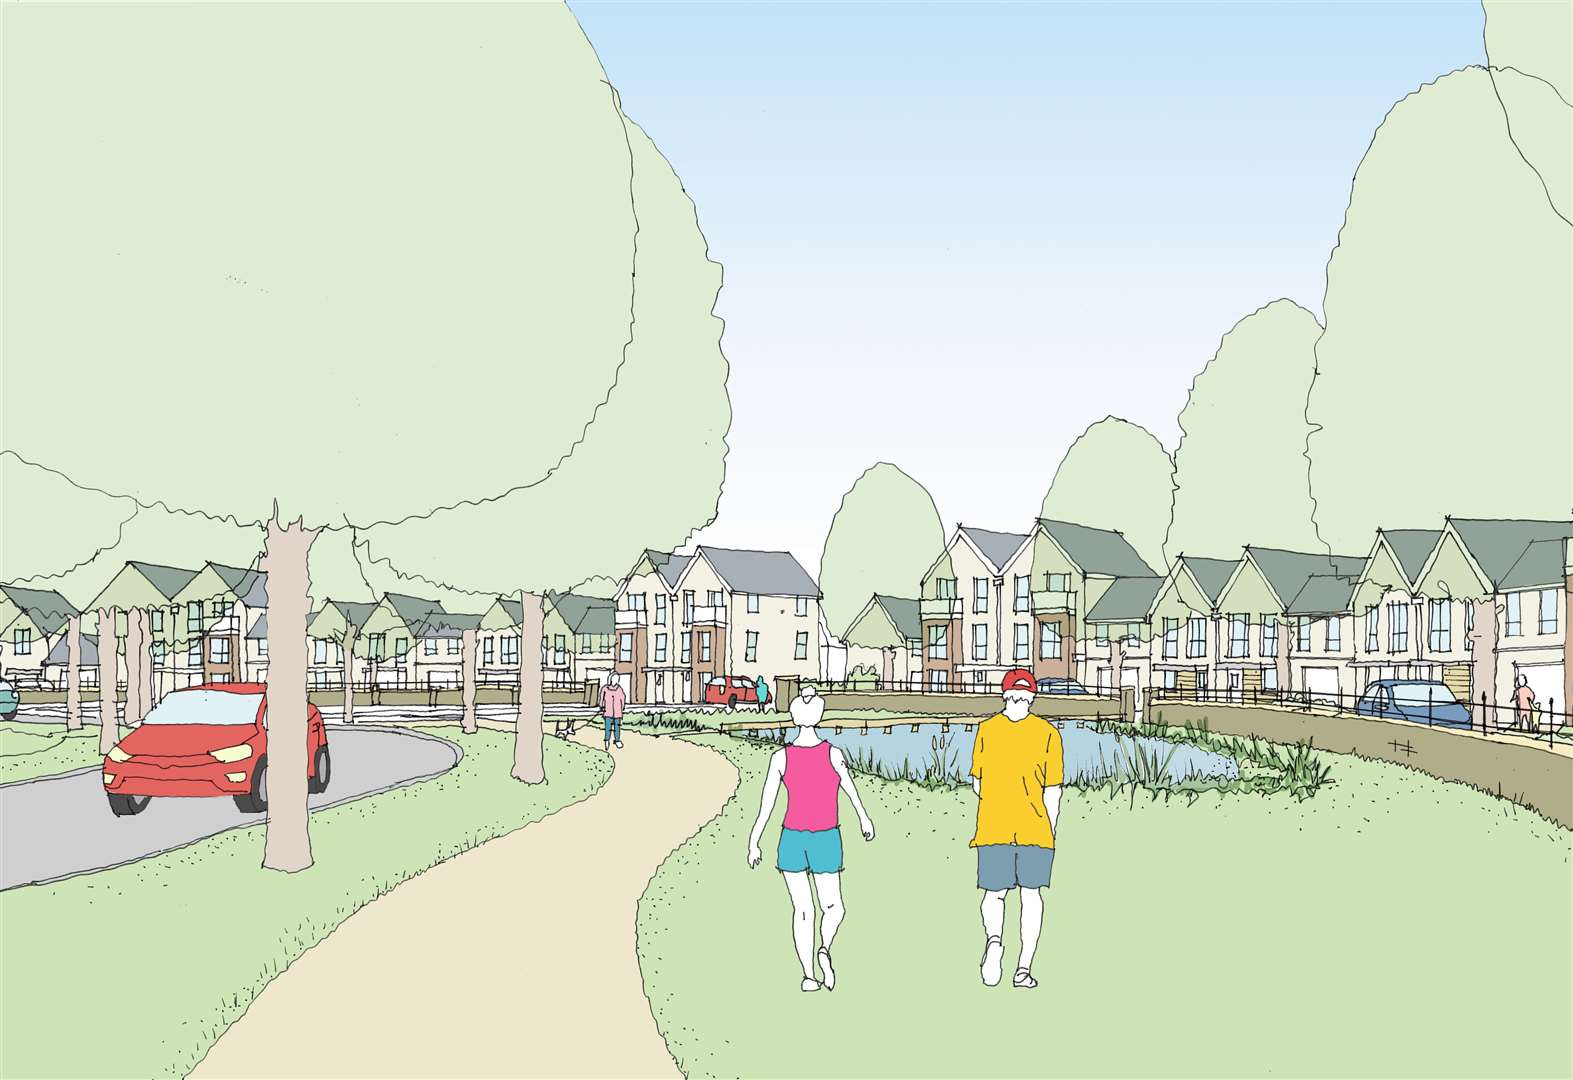 Work to begin on 783 homes at Cambourne West - and developer will contribute more than £40m for community